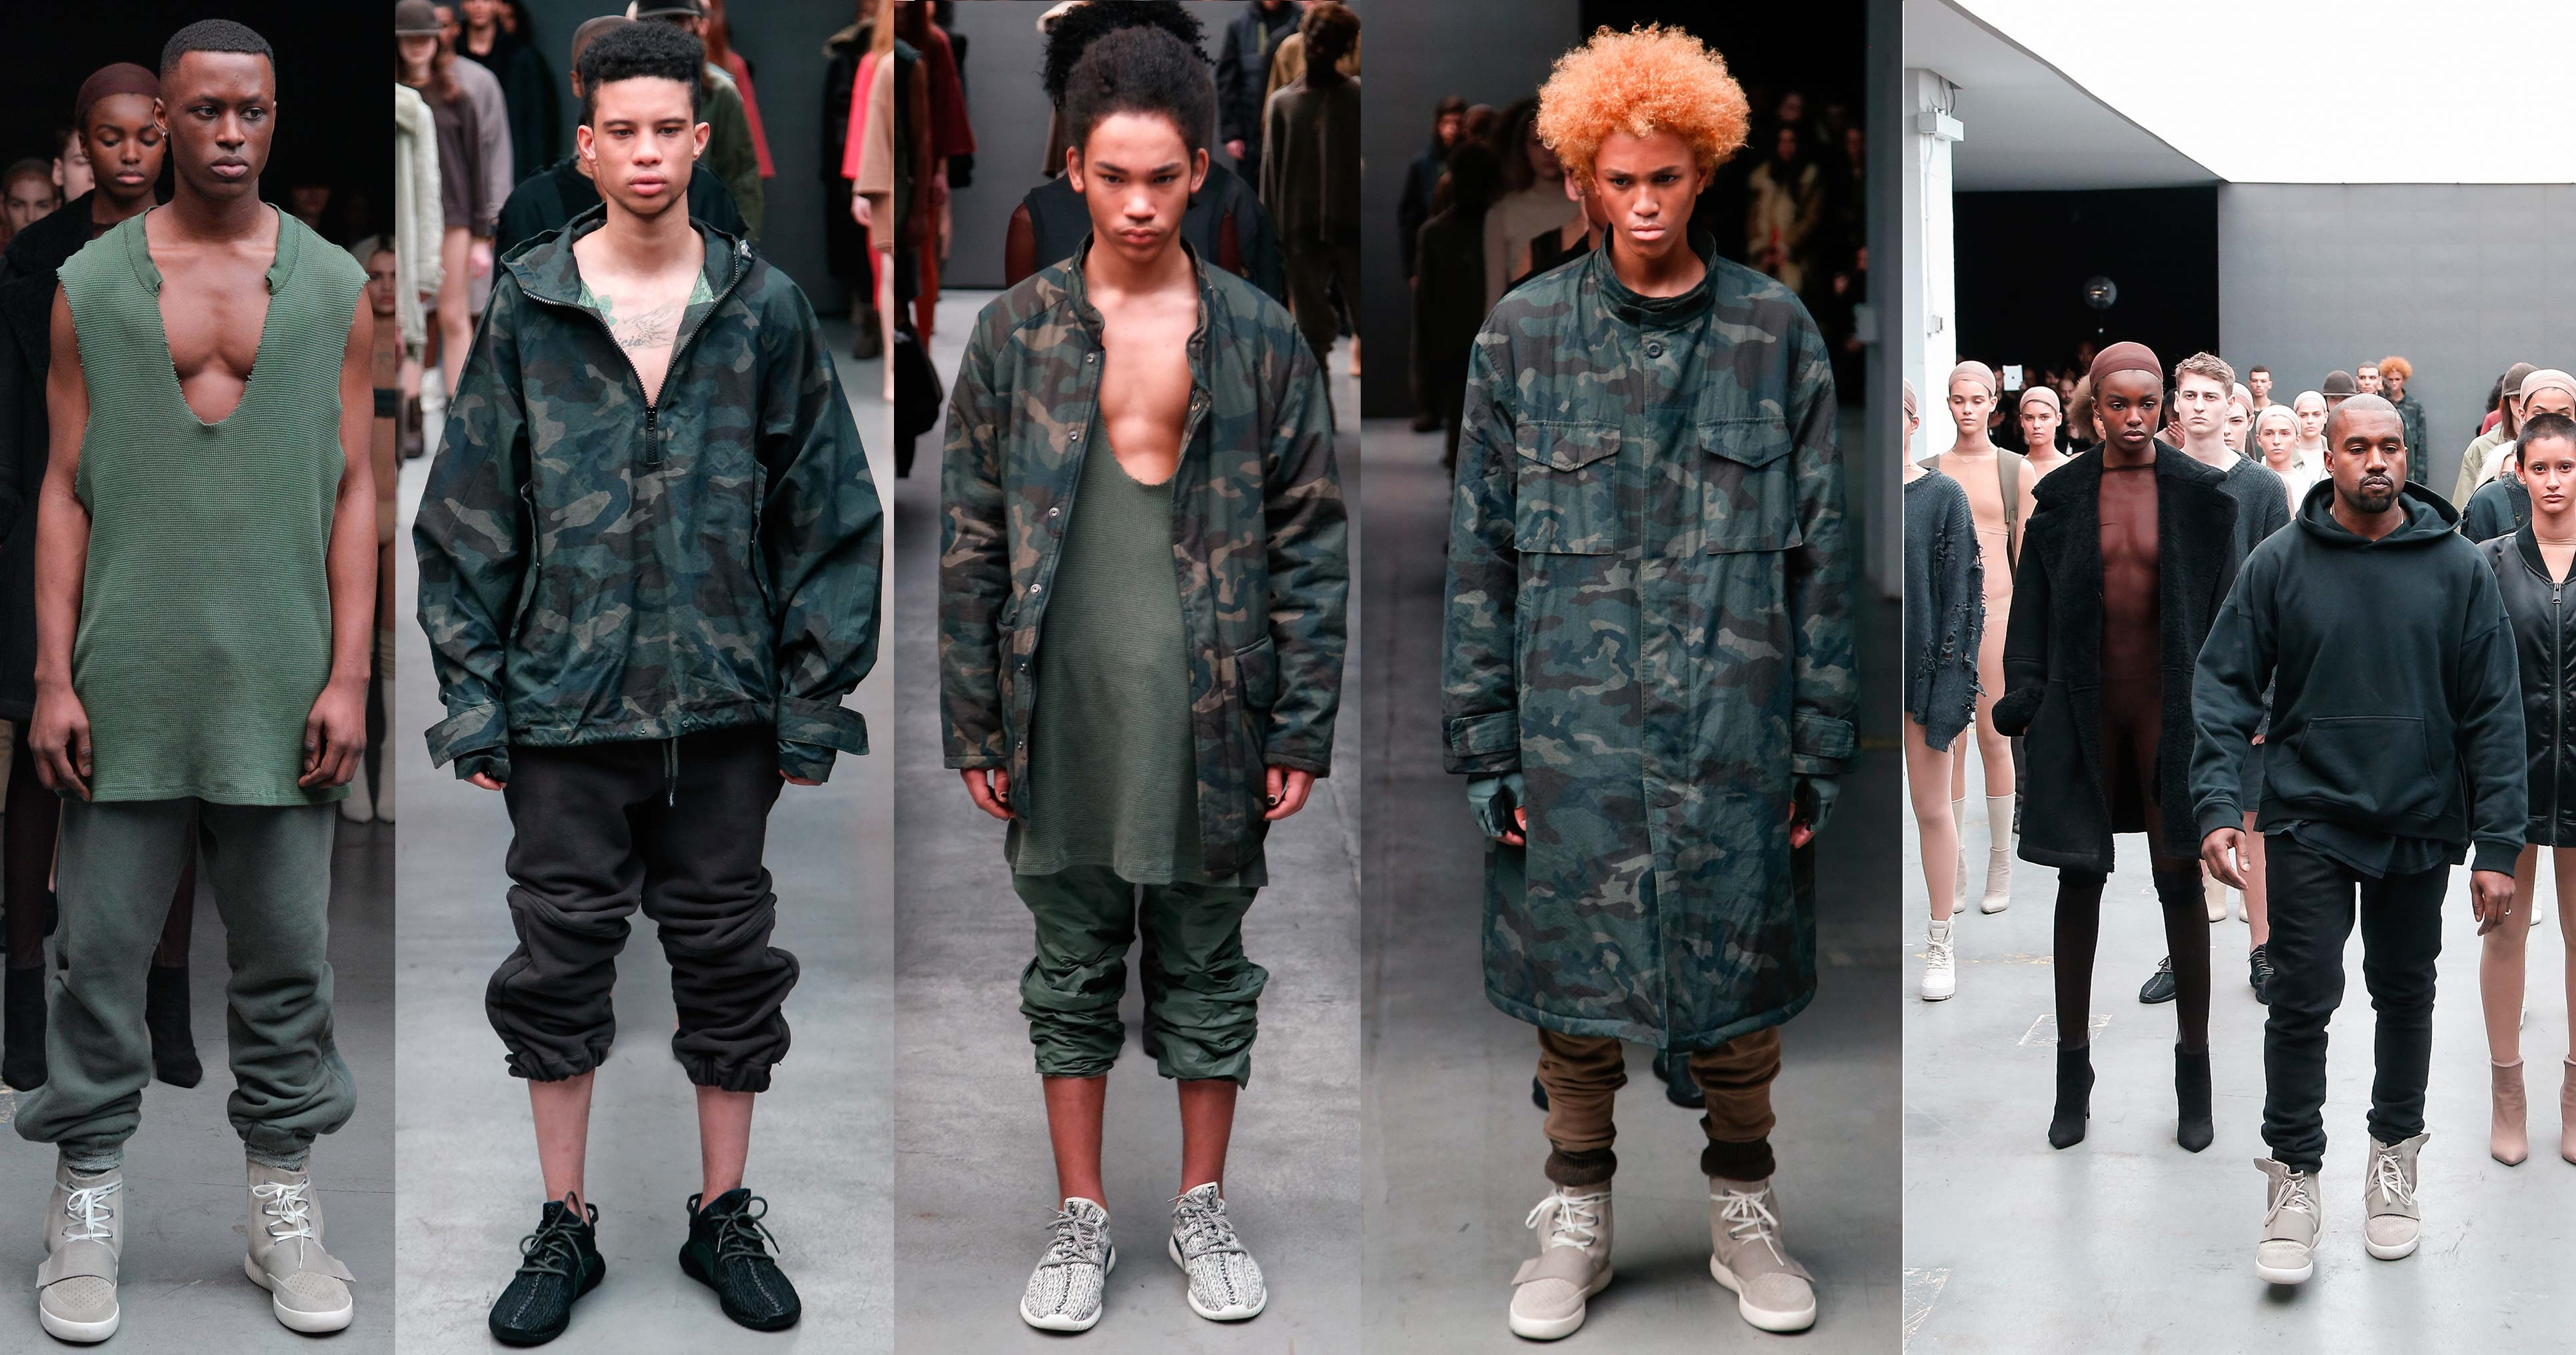 Was Kanyes Fashion Show A Disaster